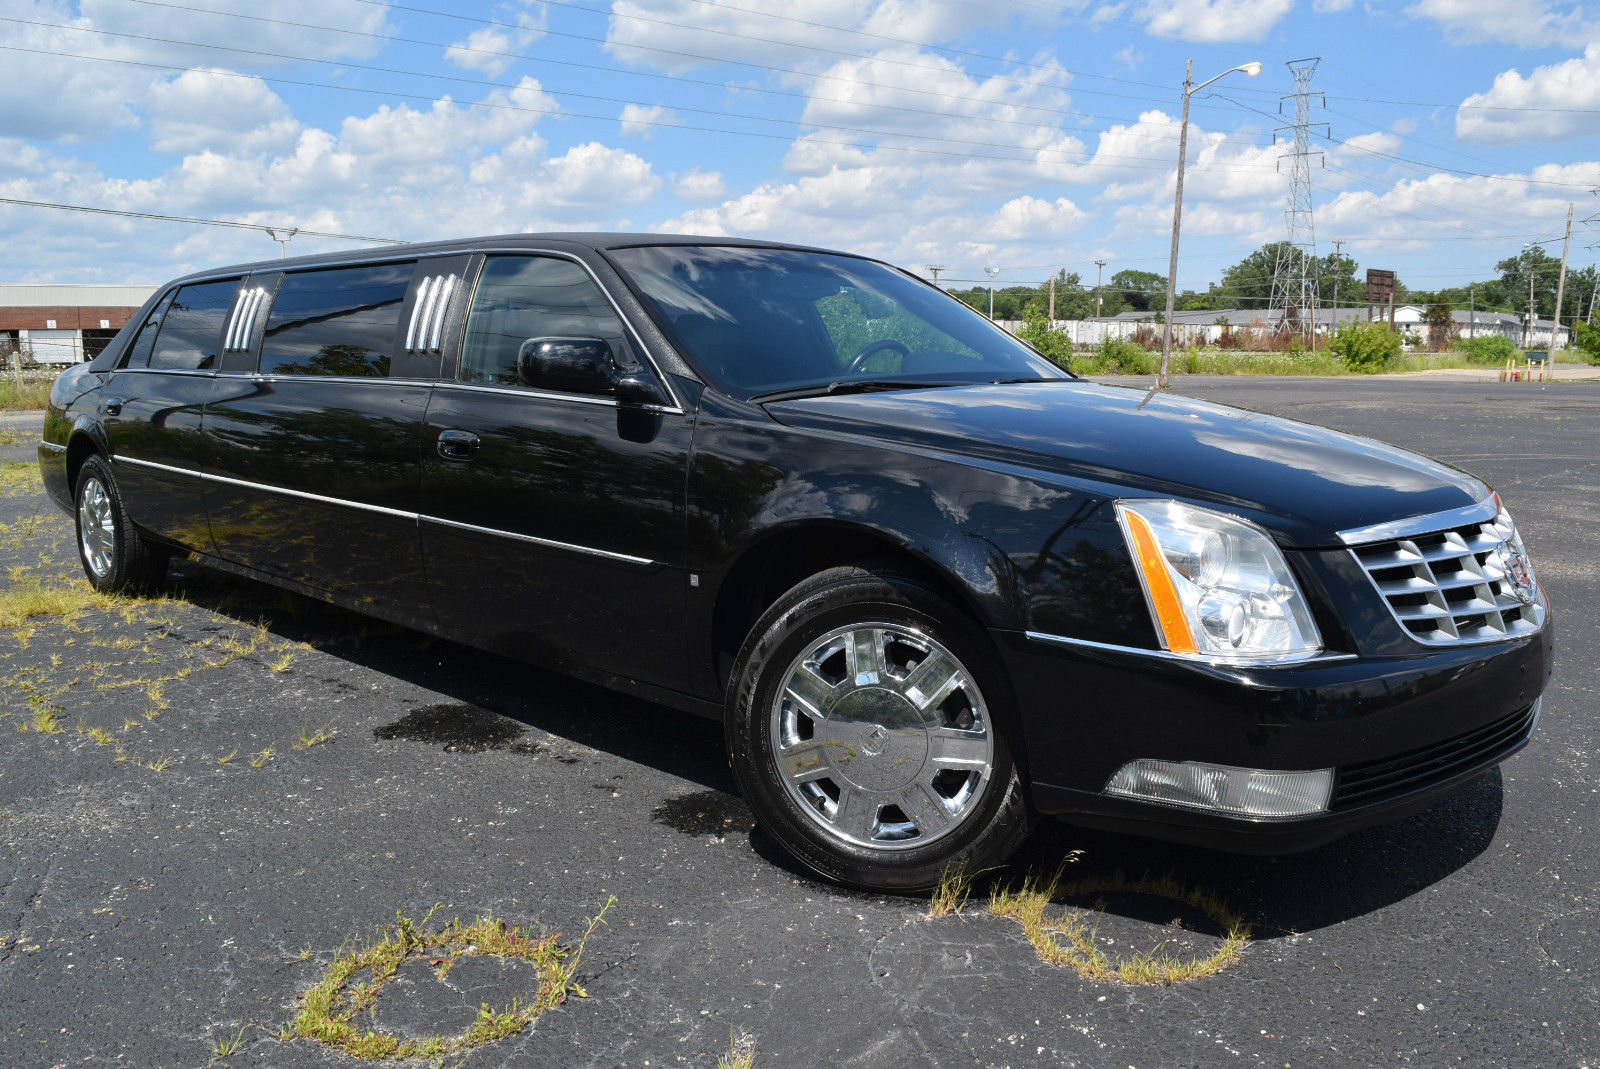 low sale dts for miles super nice cadillac i c htm l used albany superb condition luxury